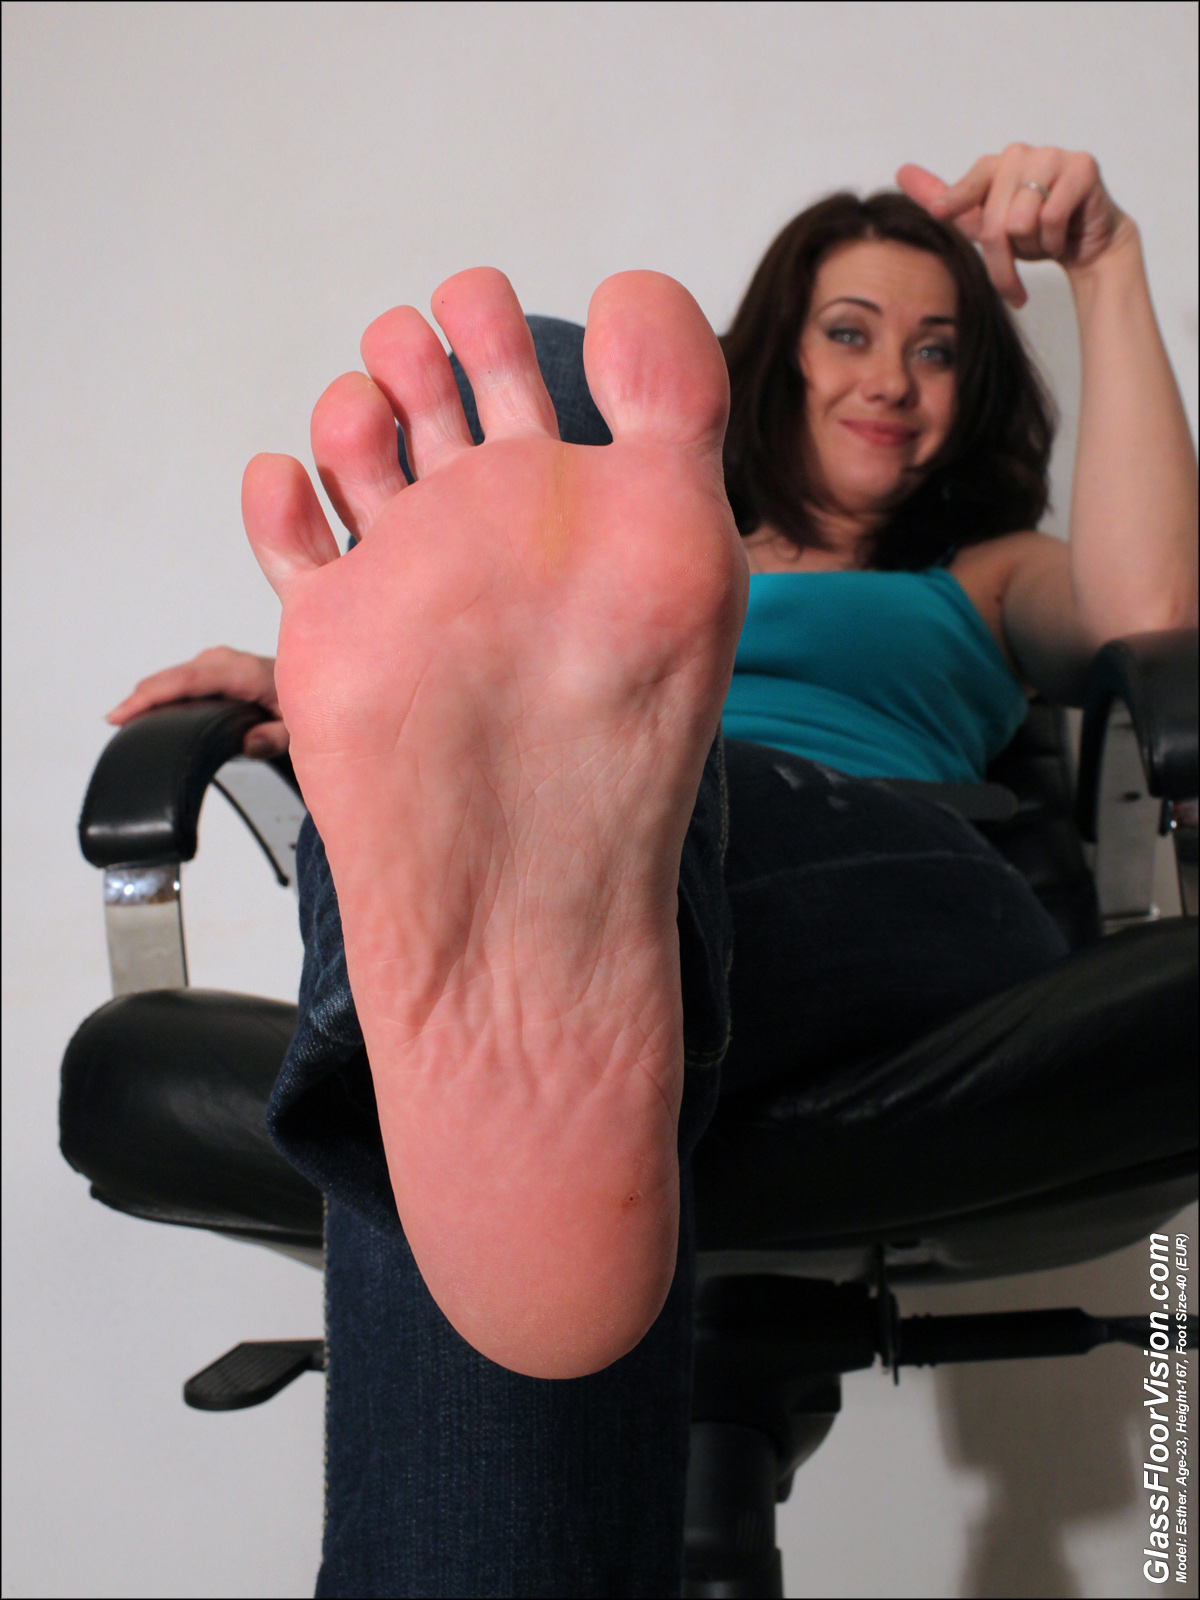 a girl named Esther showing her foot